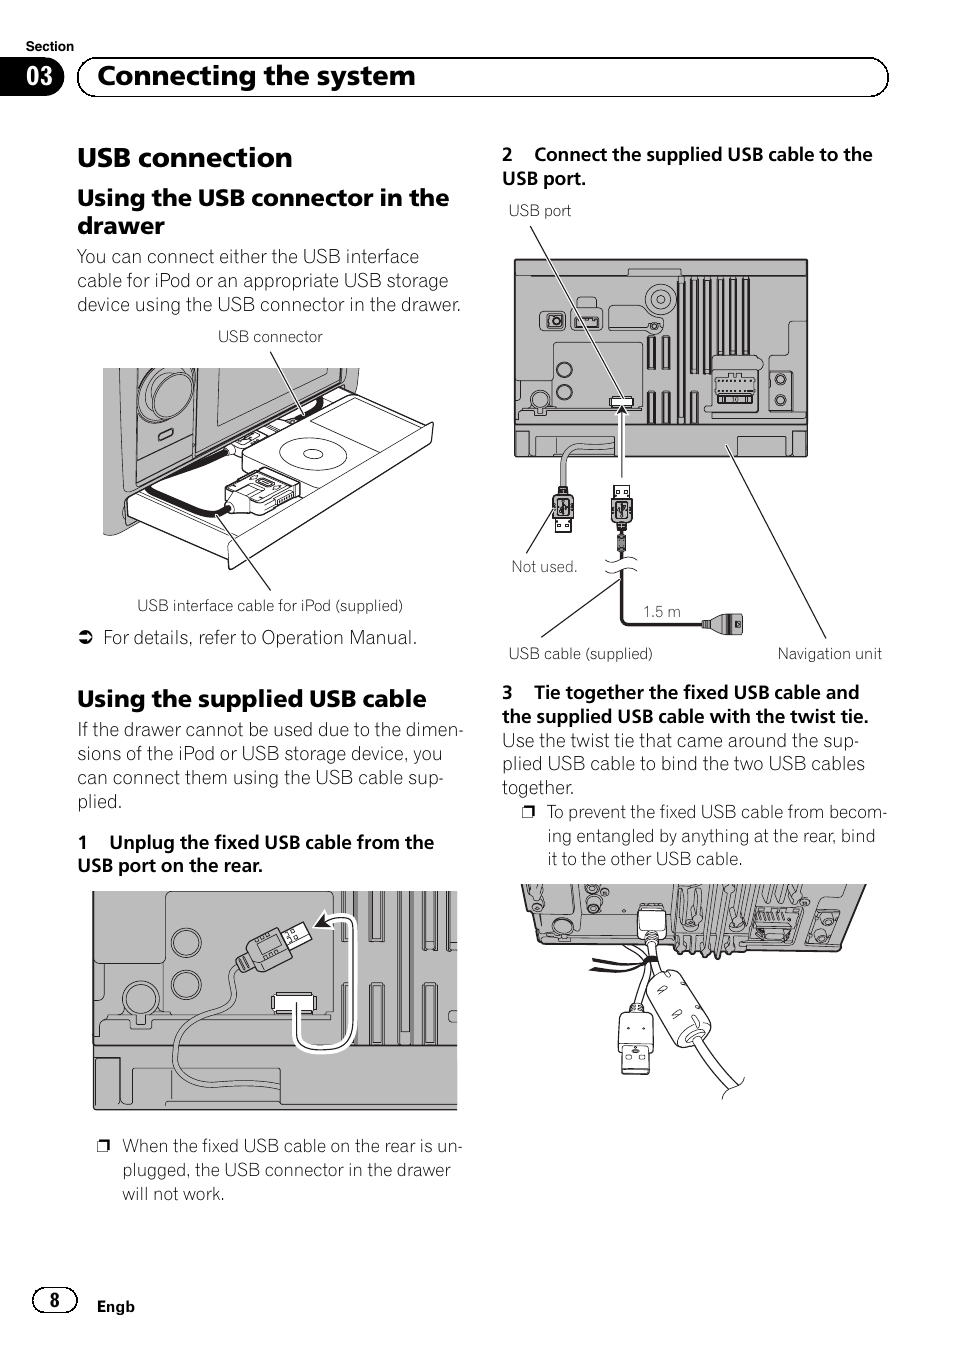 medium resolution of usb connection using the usb connector in the drawer using the supplied usb